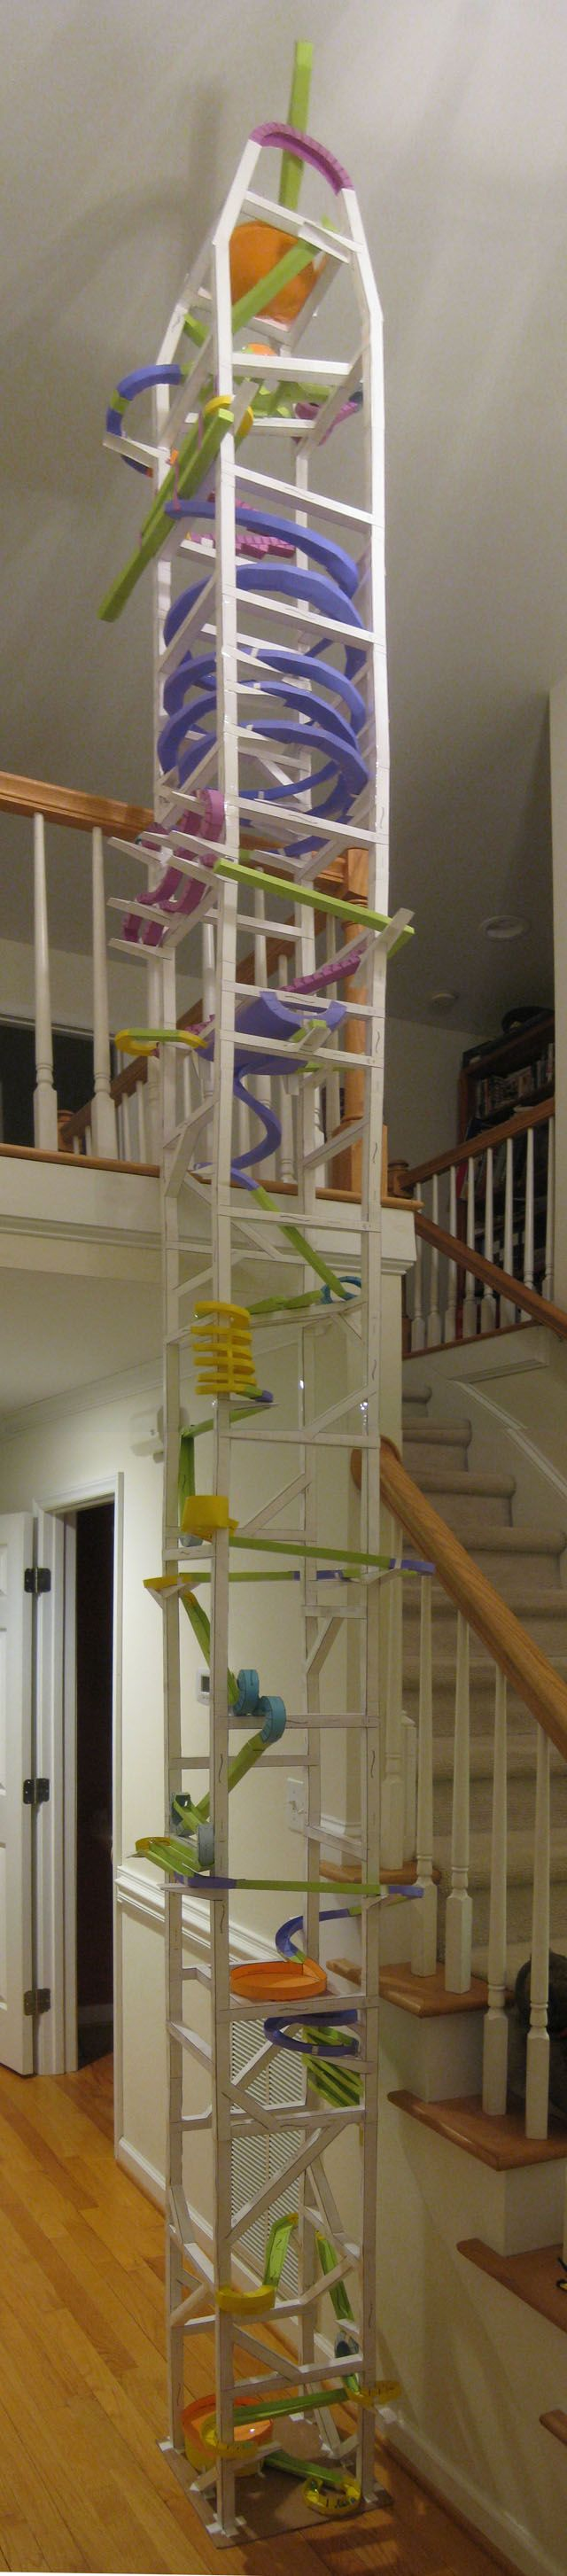 make this with my kids. They love throwing balloons, stuffed animals and parachute men over the balcony in our foyer. This would blow their mind!